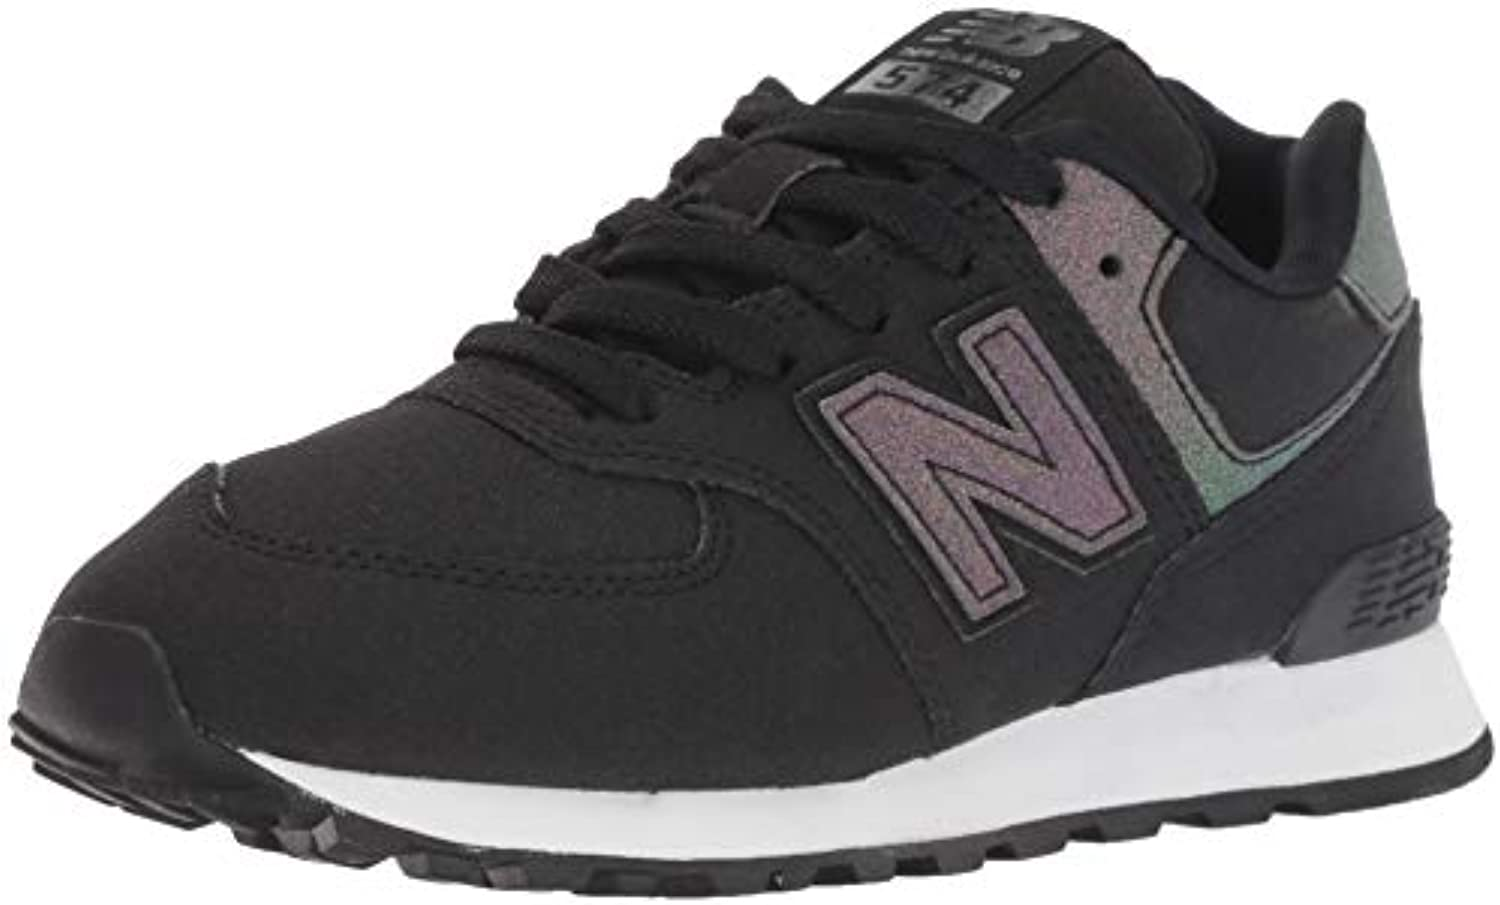 New Balance Girls' 574v1 scarpe da ginnastica, nero Multi, 2.5 2.5 2.5 W US Little Kid | Vogue